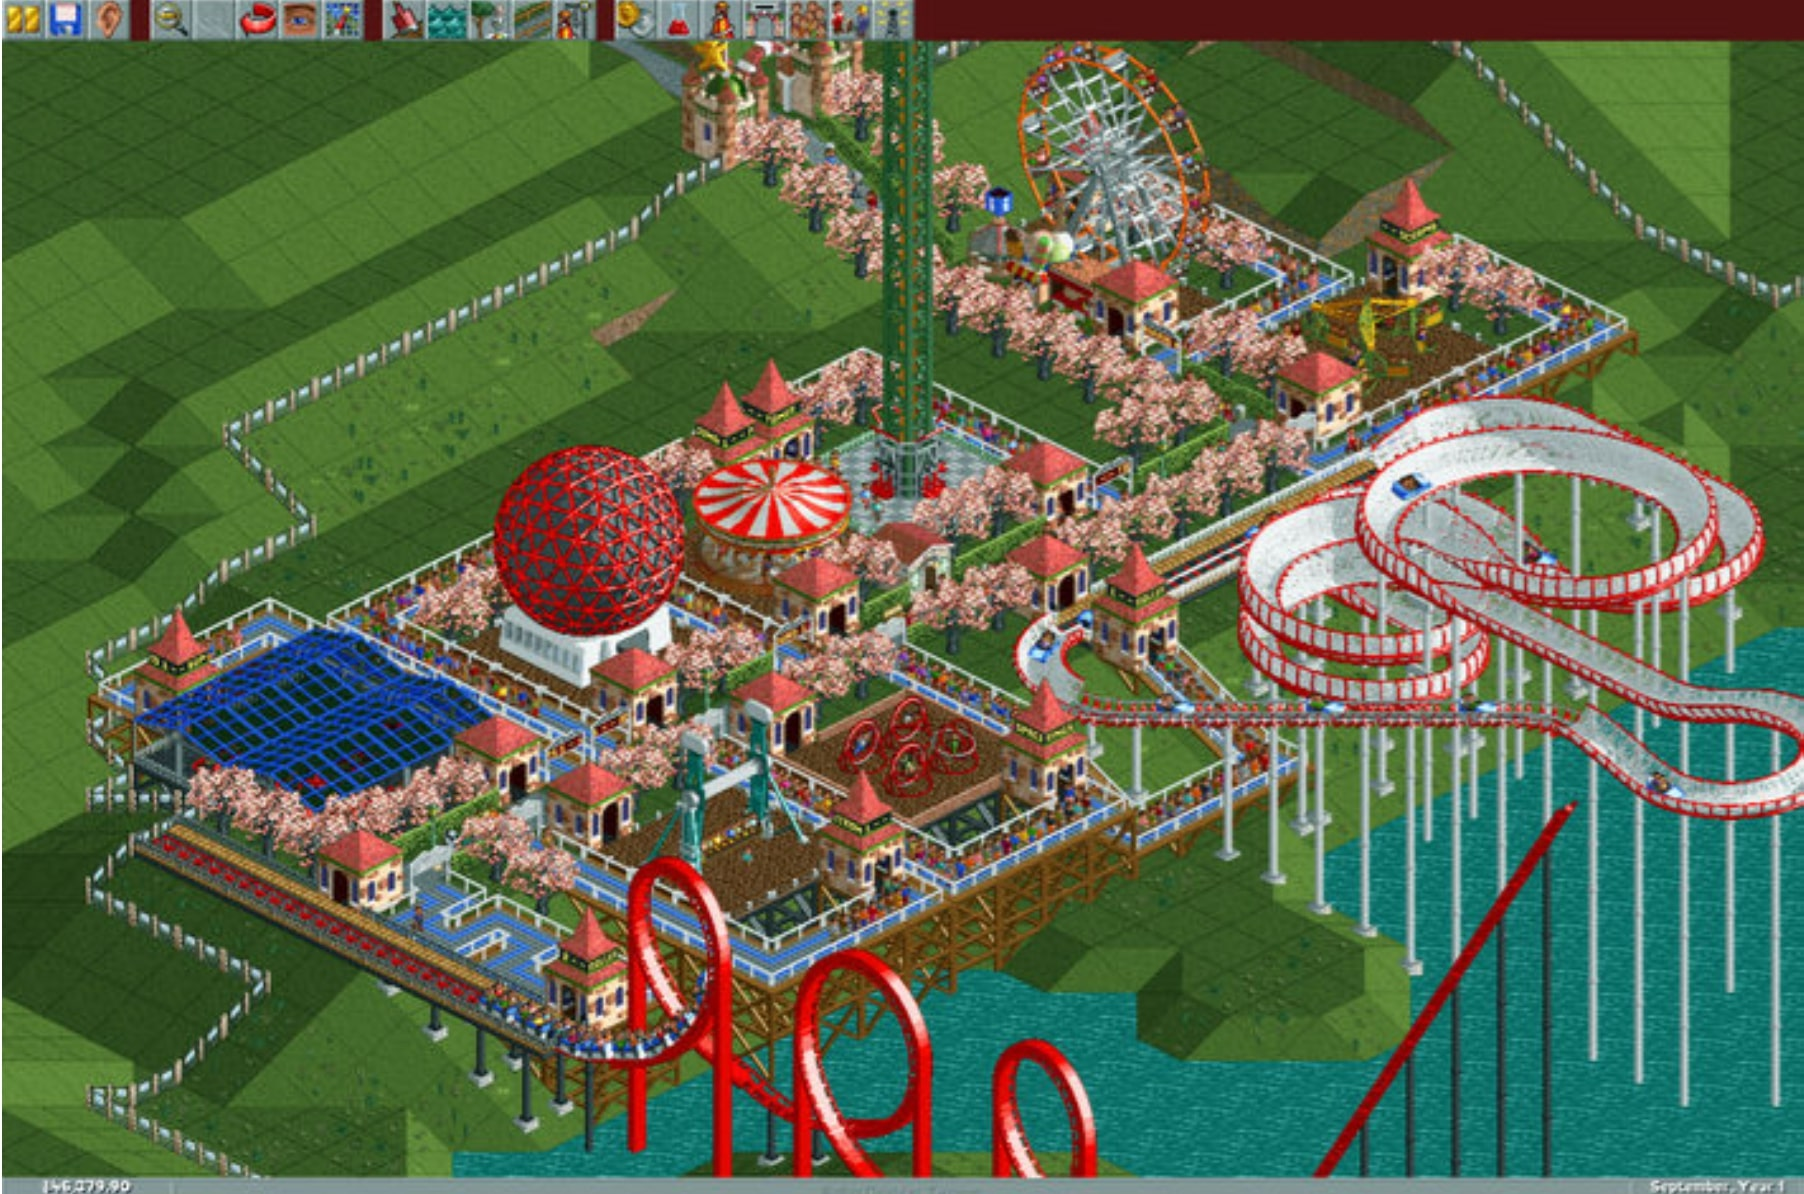 An image of original Rollercoaster Tycoon gameplay.